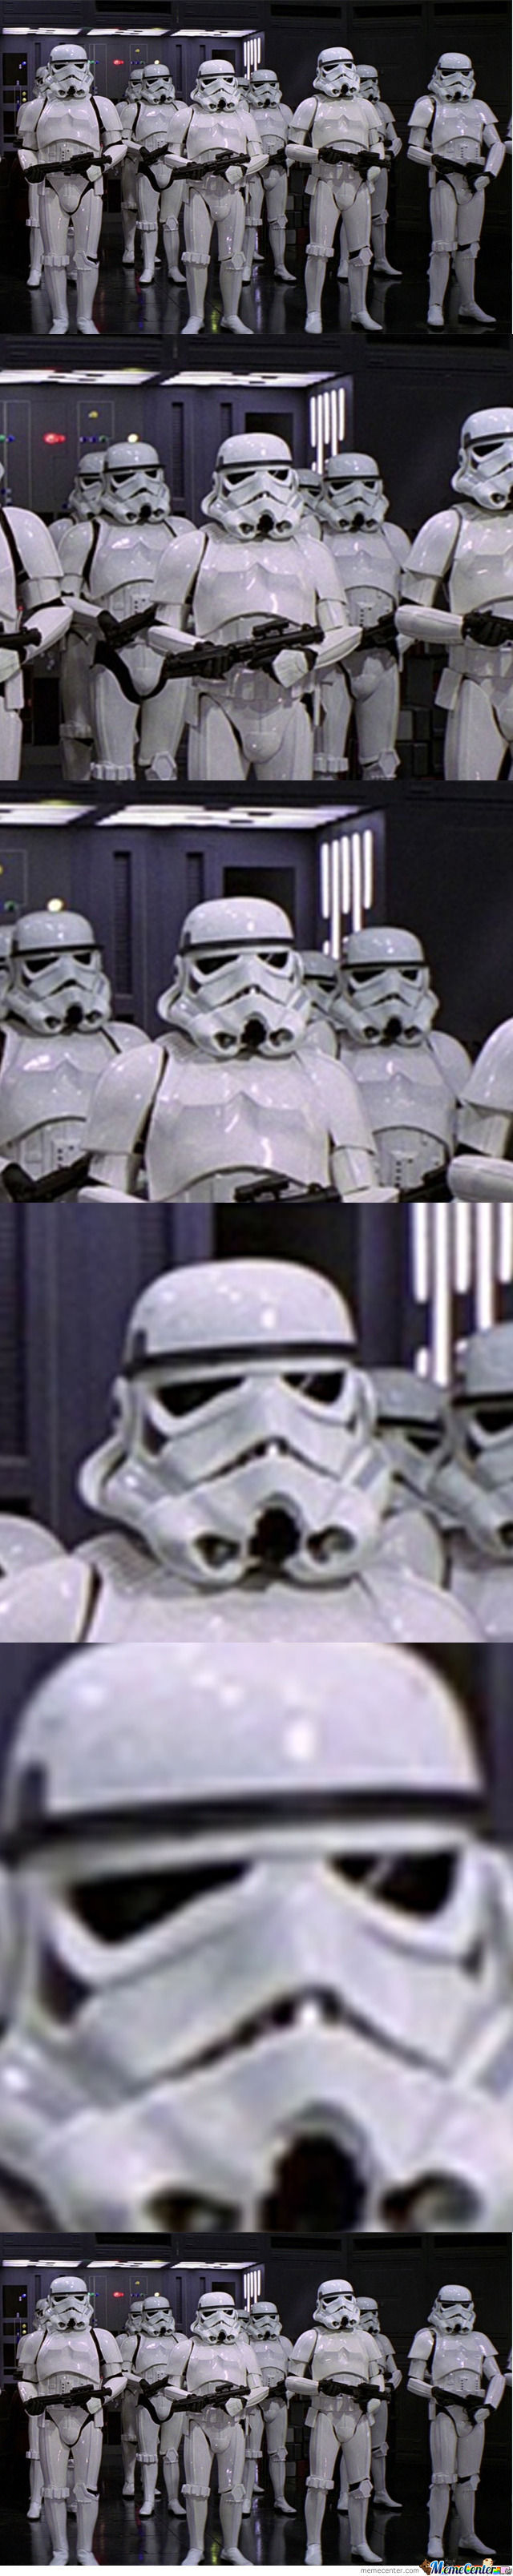 Face Swapping Level: Stormtroopers